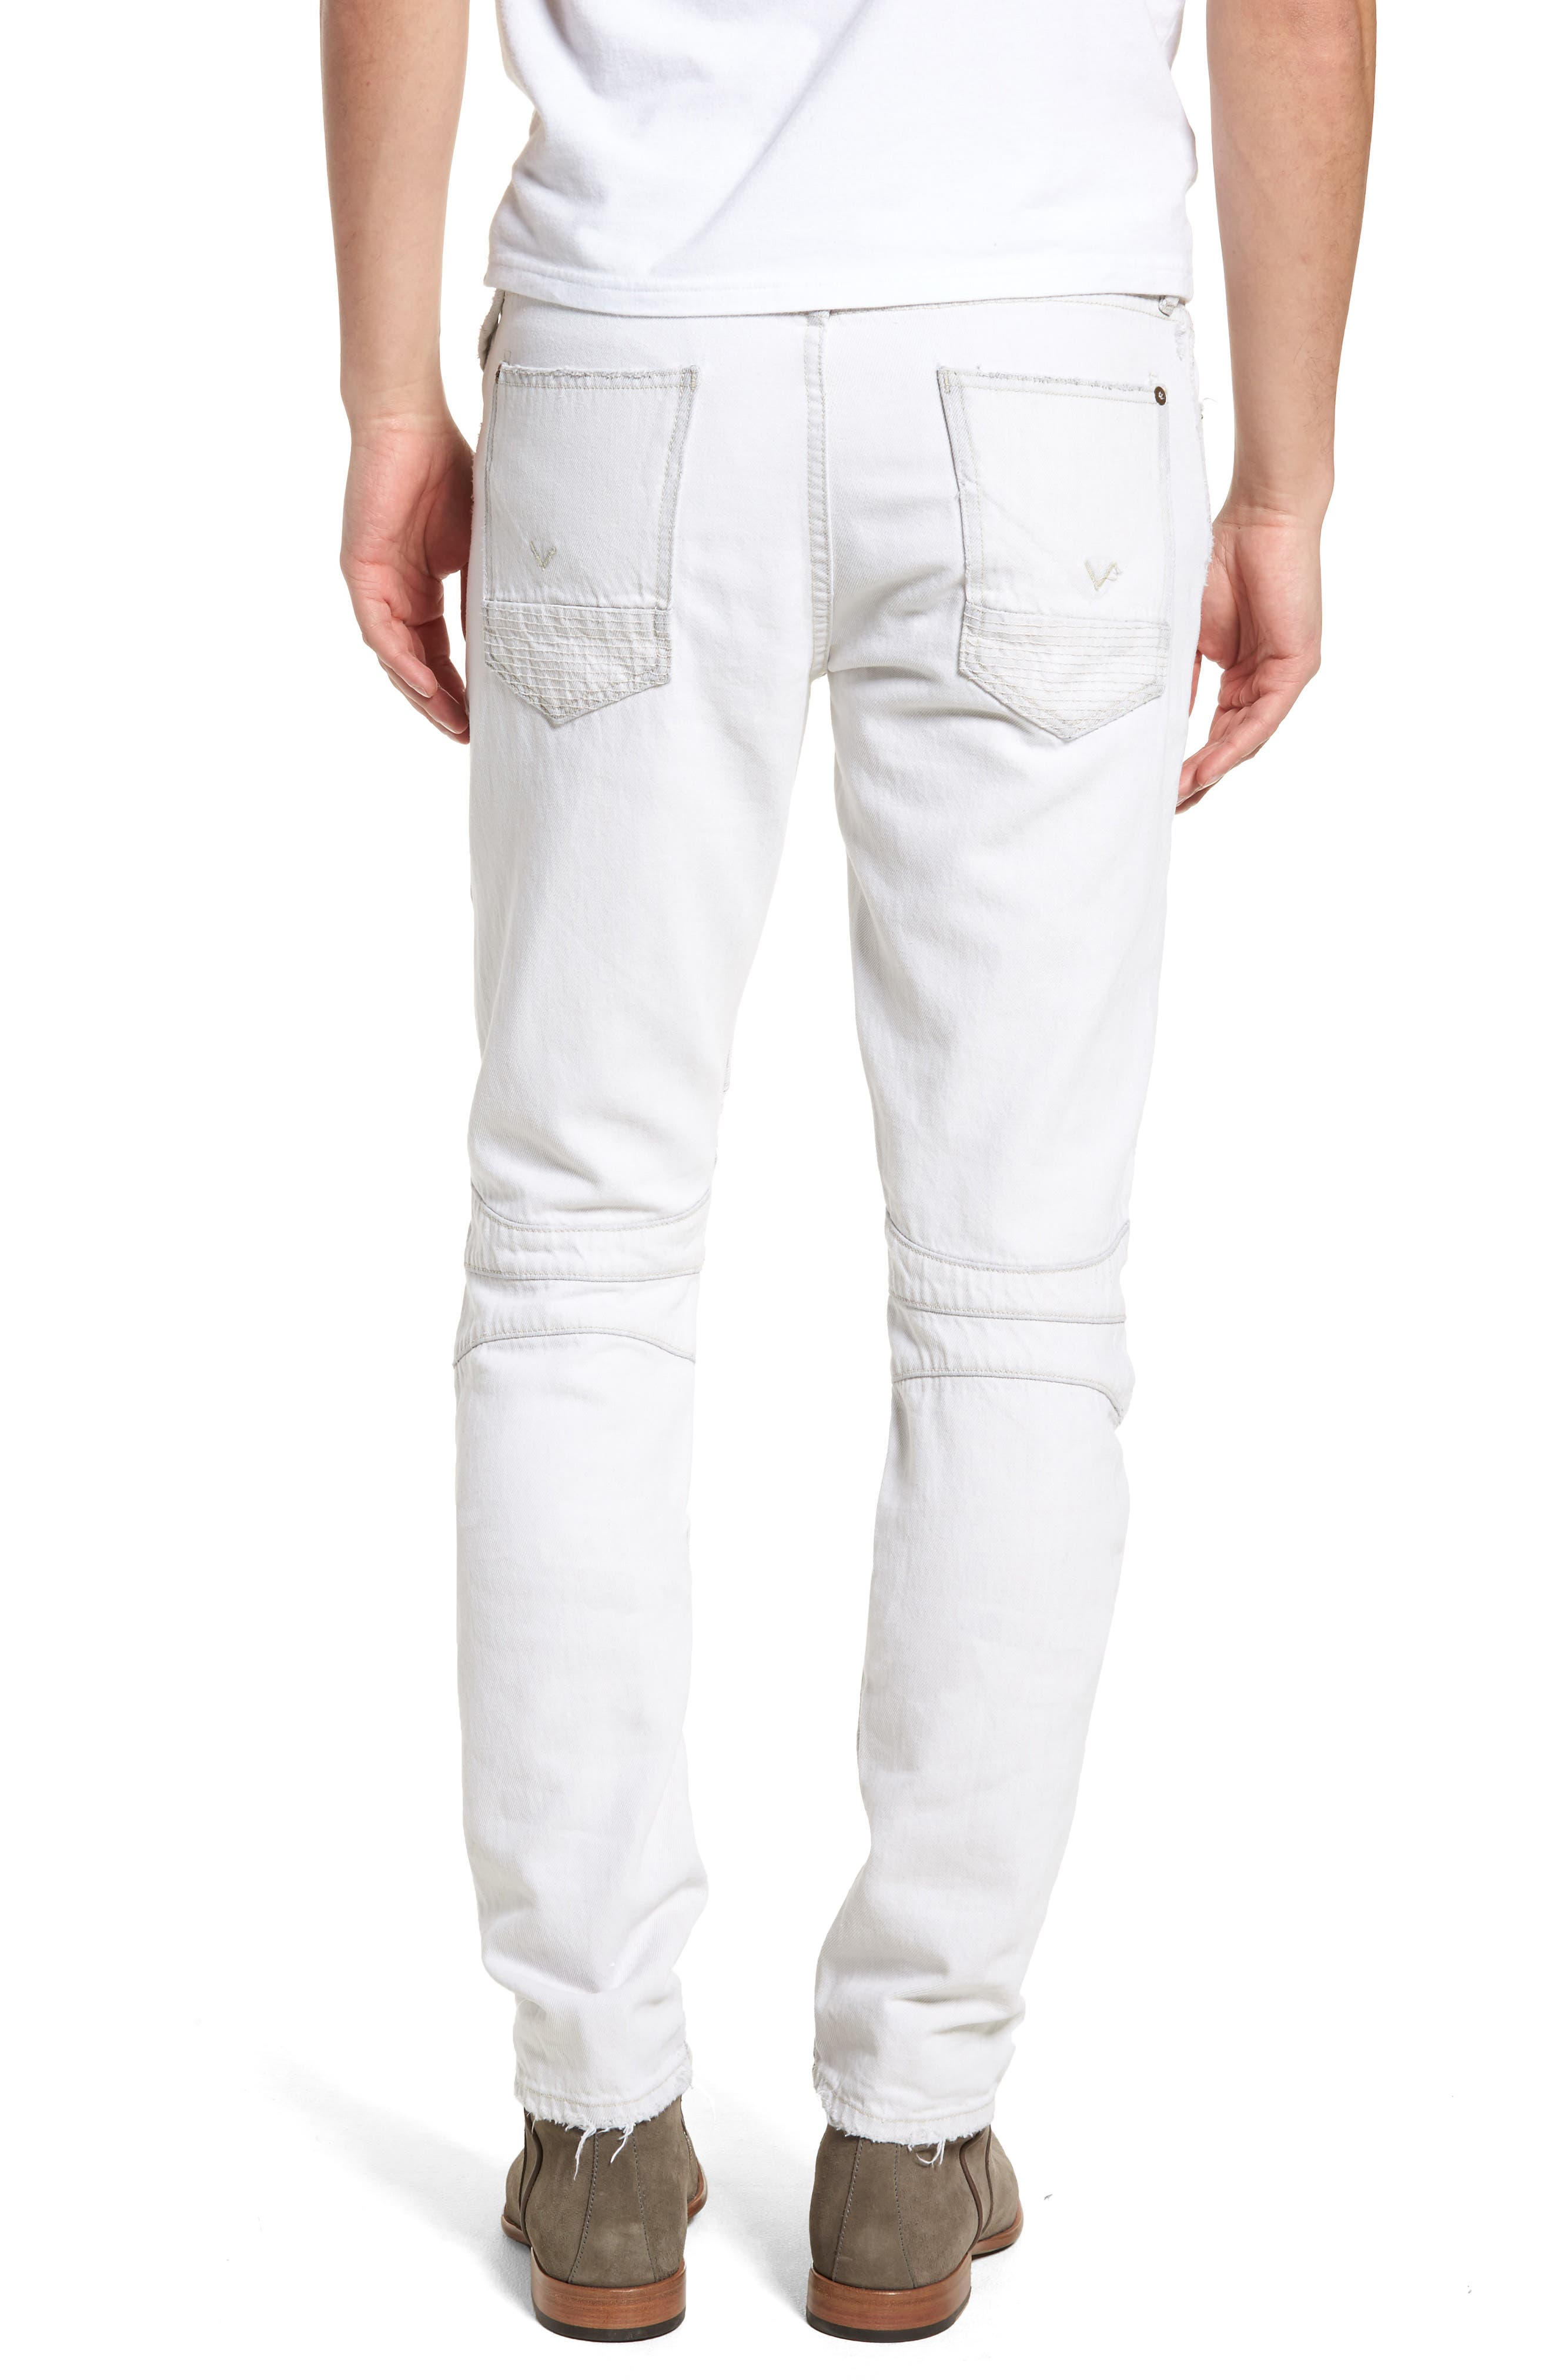 Blinder Biker Skinny Fit Moto Jeans,                             Alternate thumbnail 2, color,                             Extracted White